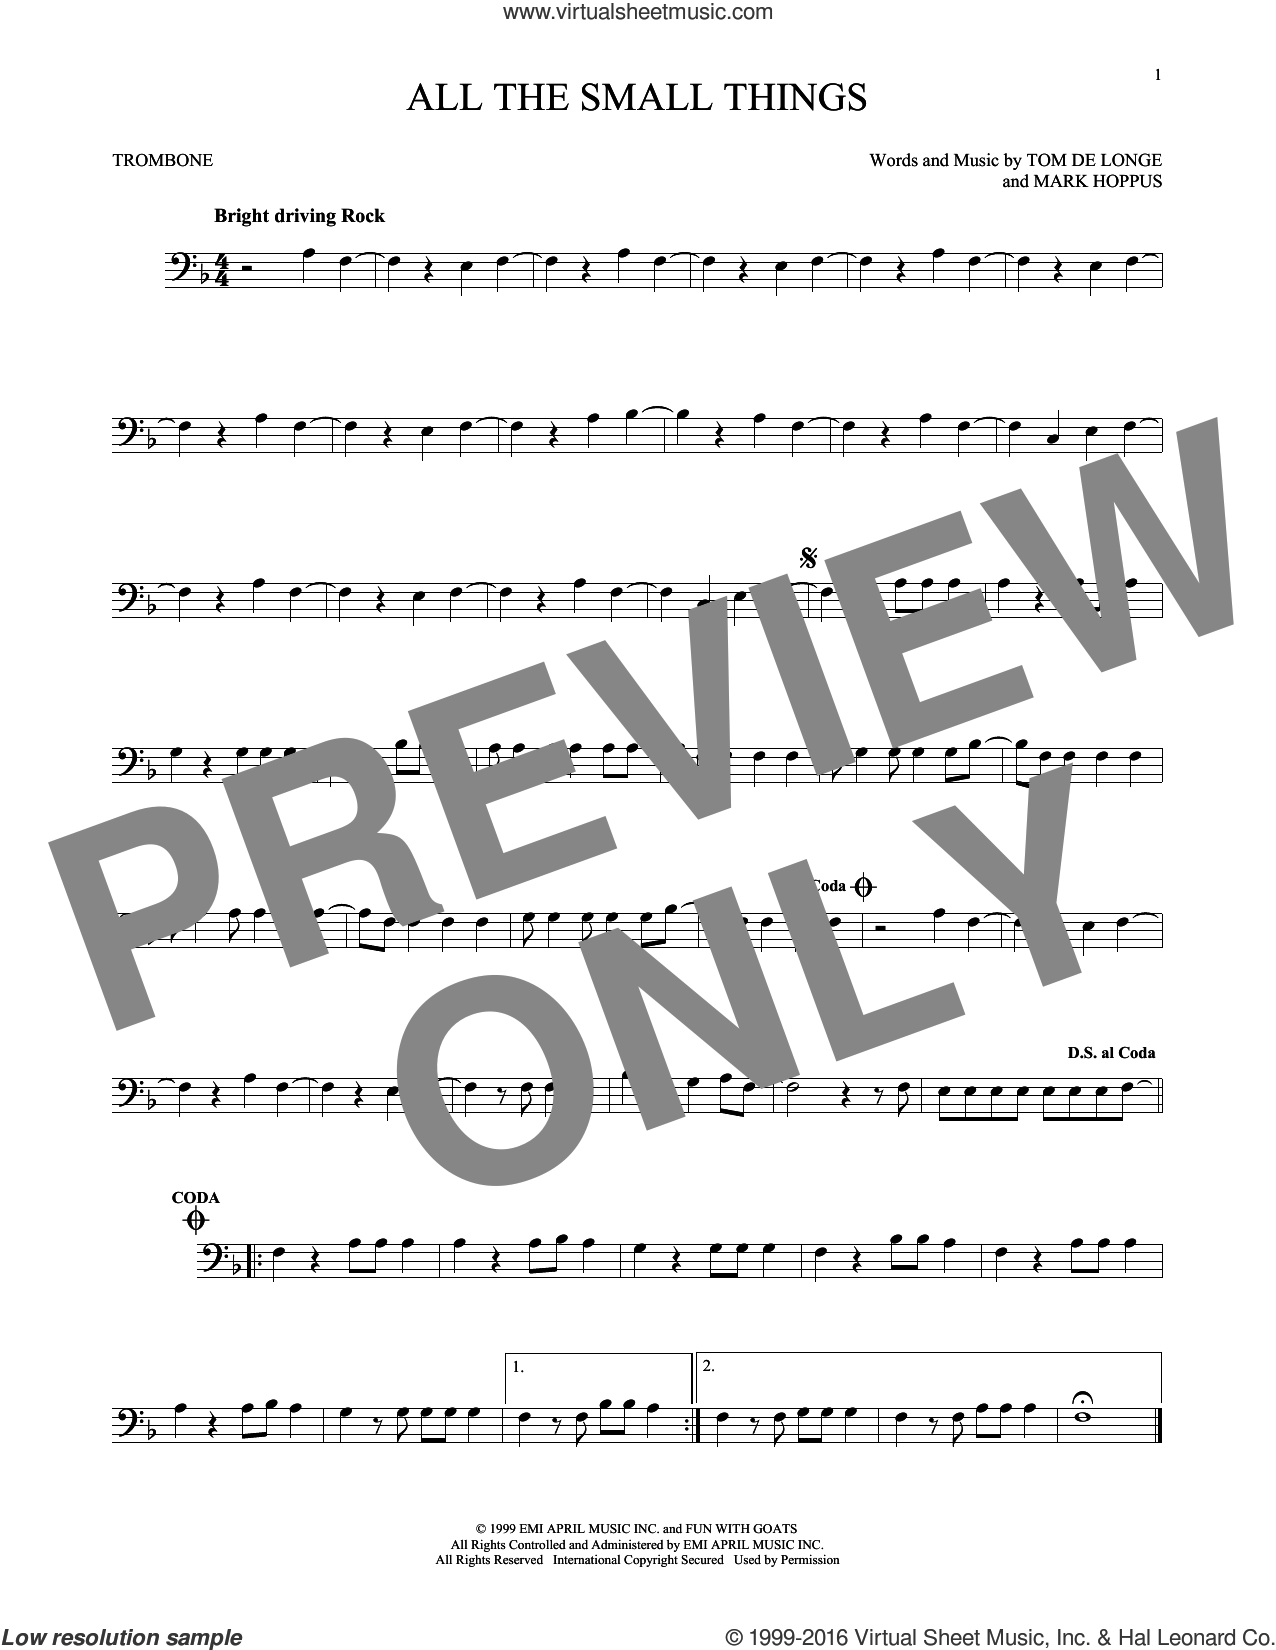 All The Small Things sheet music for trombone solo by Blink 182, Mark Hoppus, Tom DeLonge and Travis Barker, intermediate skill level